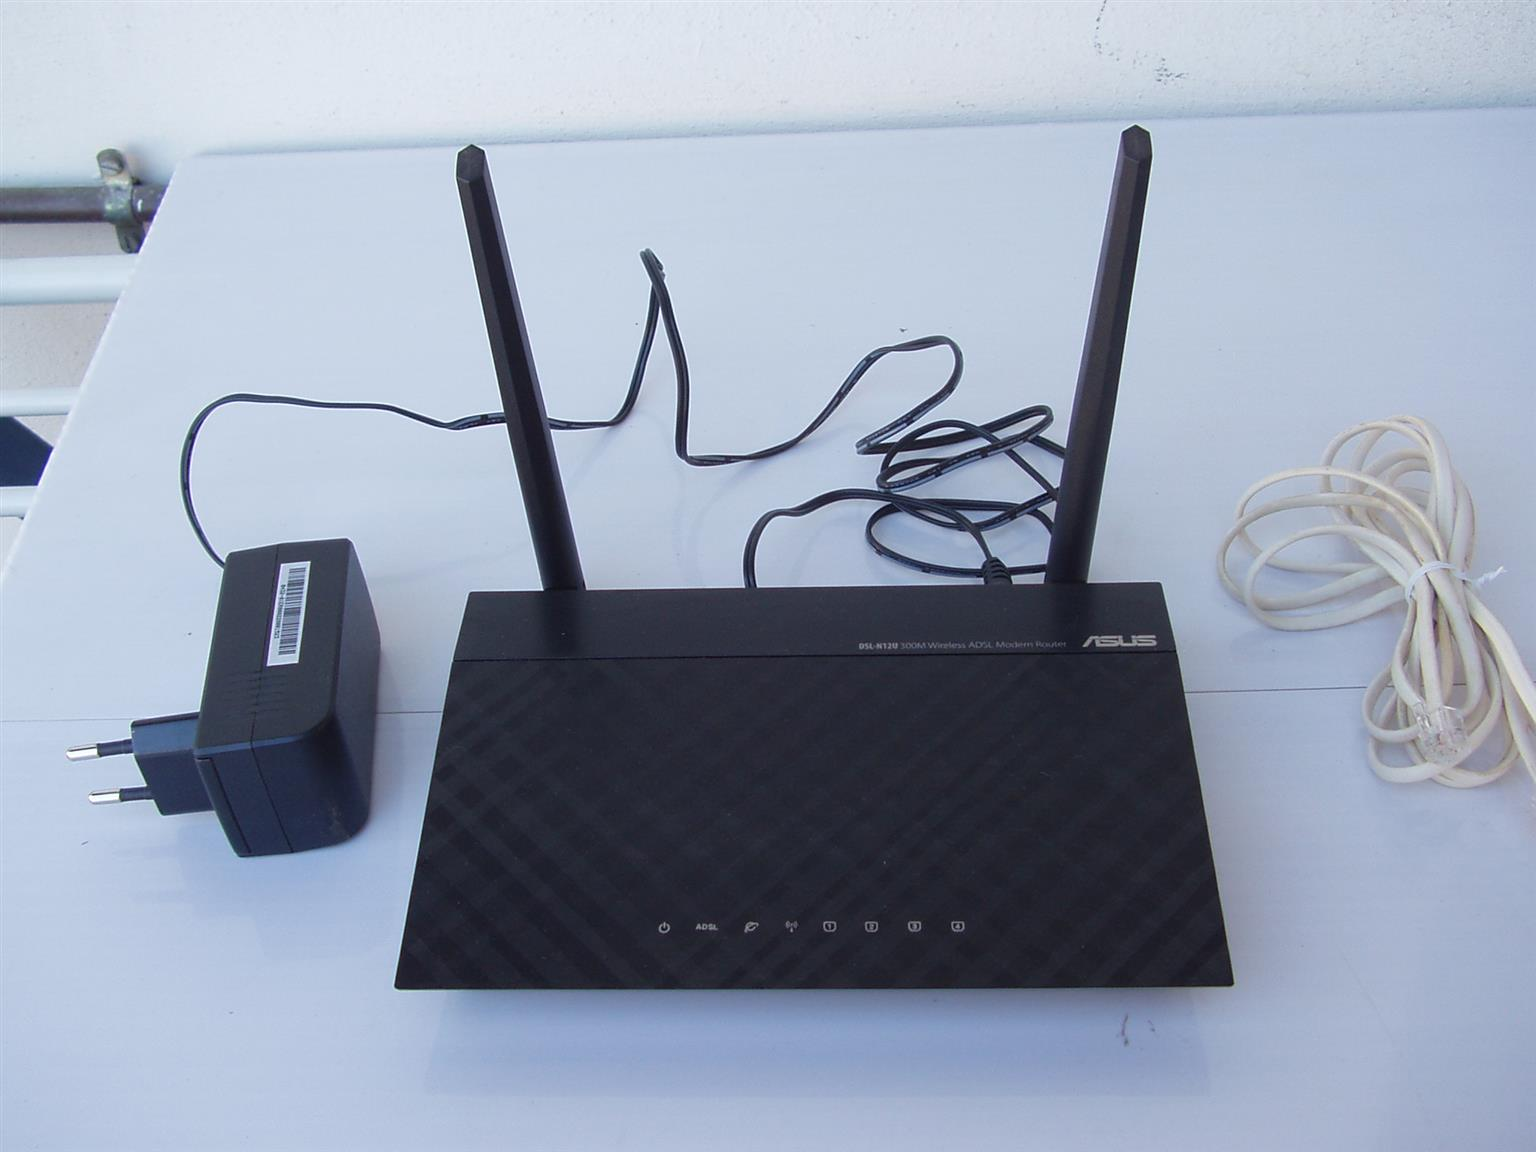 Asus Wireless Modem Router - with power cable